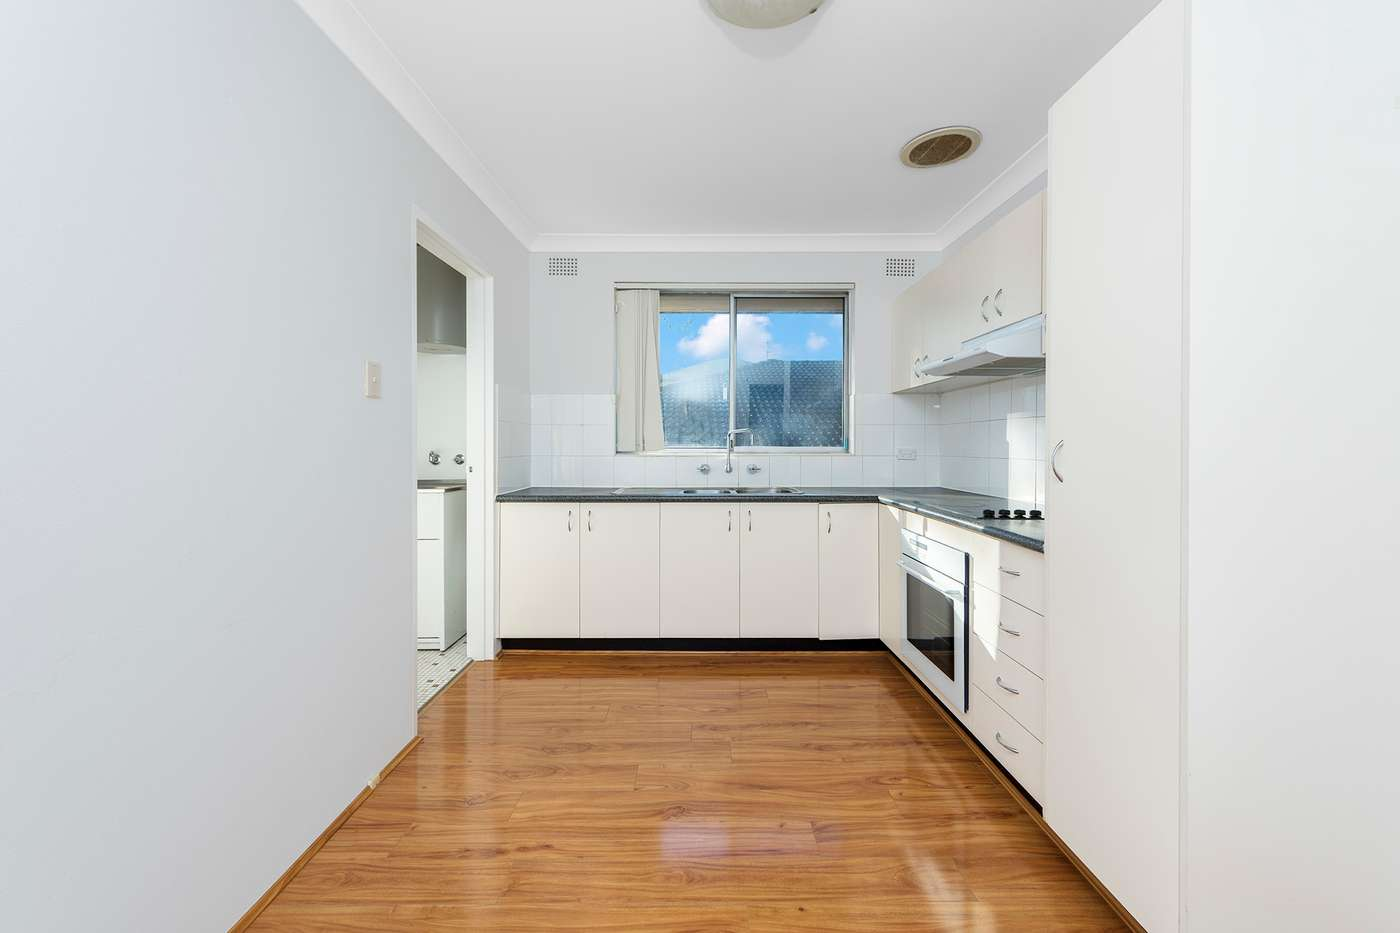 Main view of Homely unit listing, 6/12 O'Reilly Street, Parramatta, NSW 2150